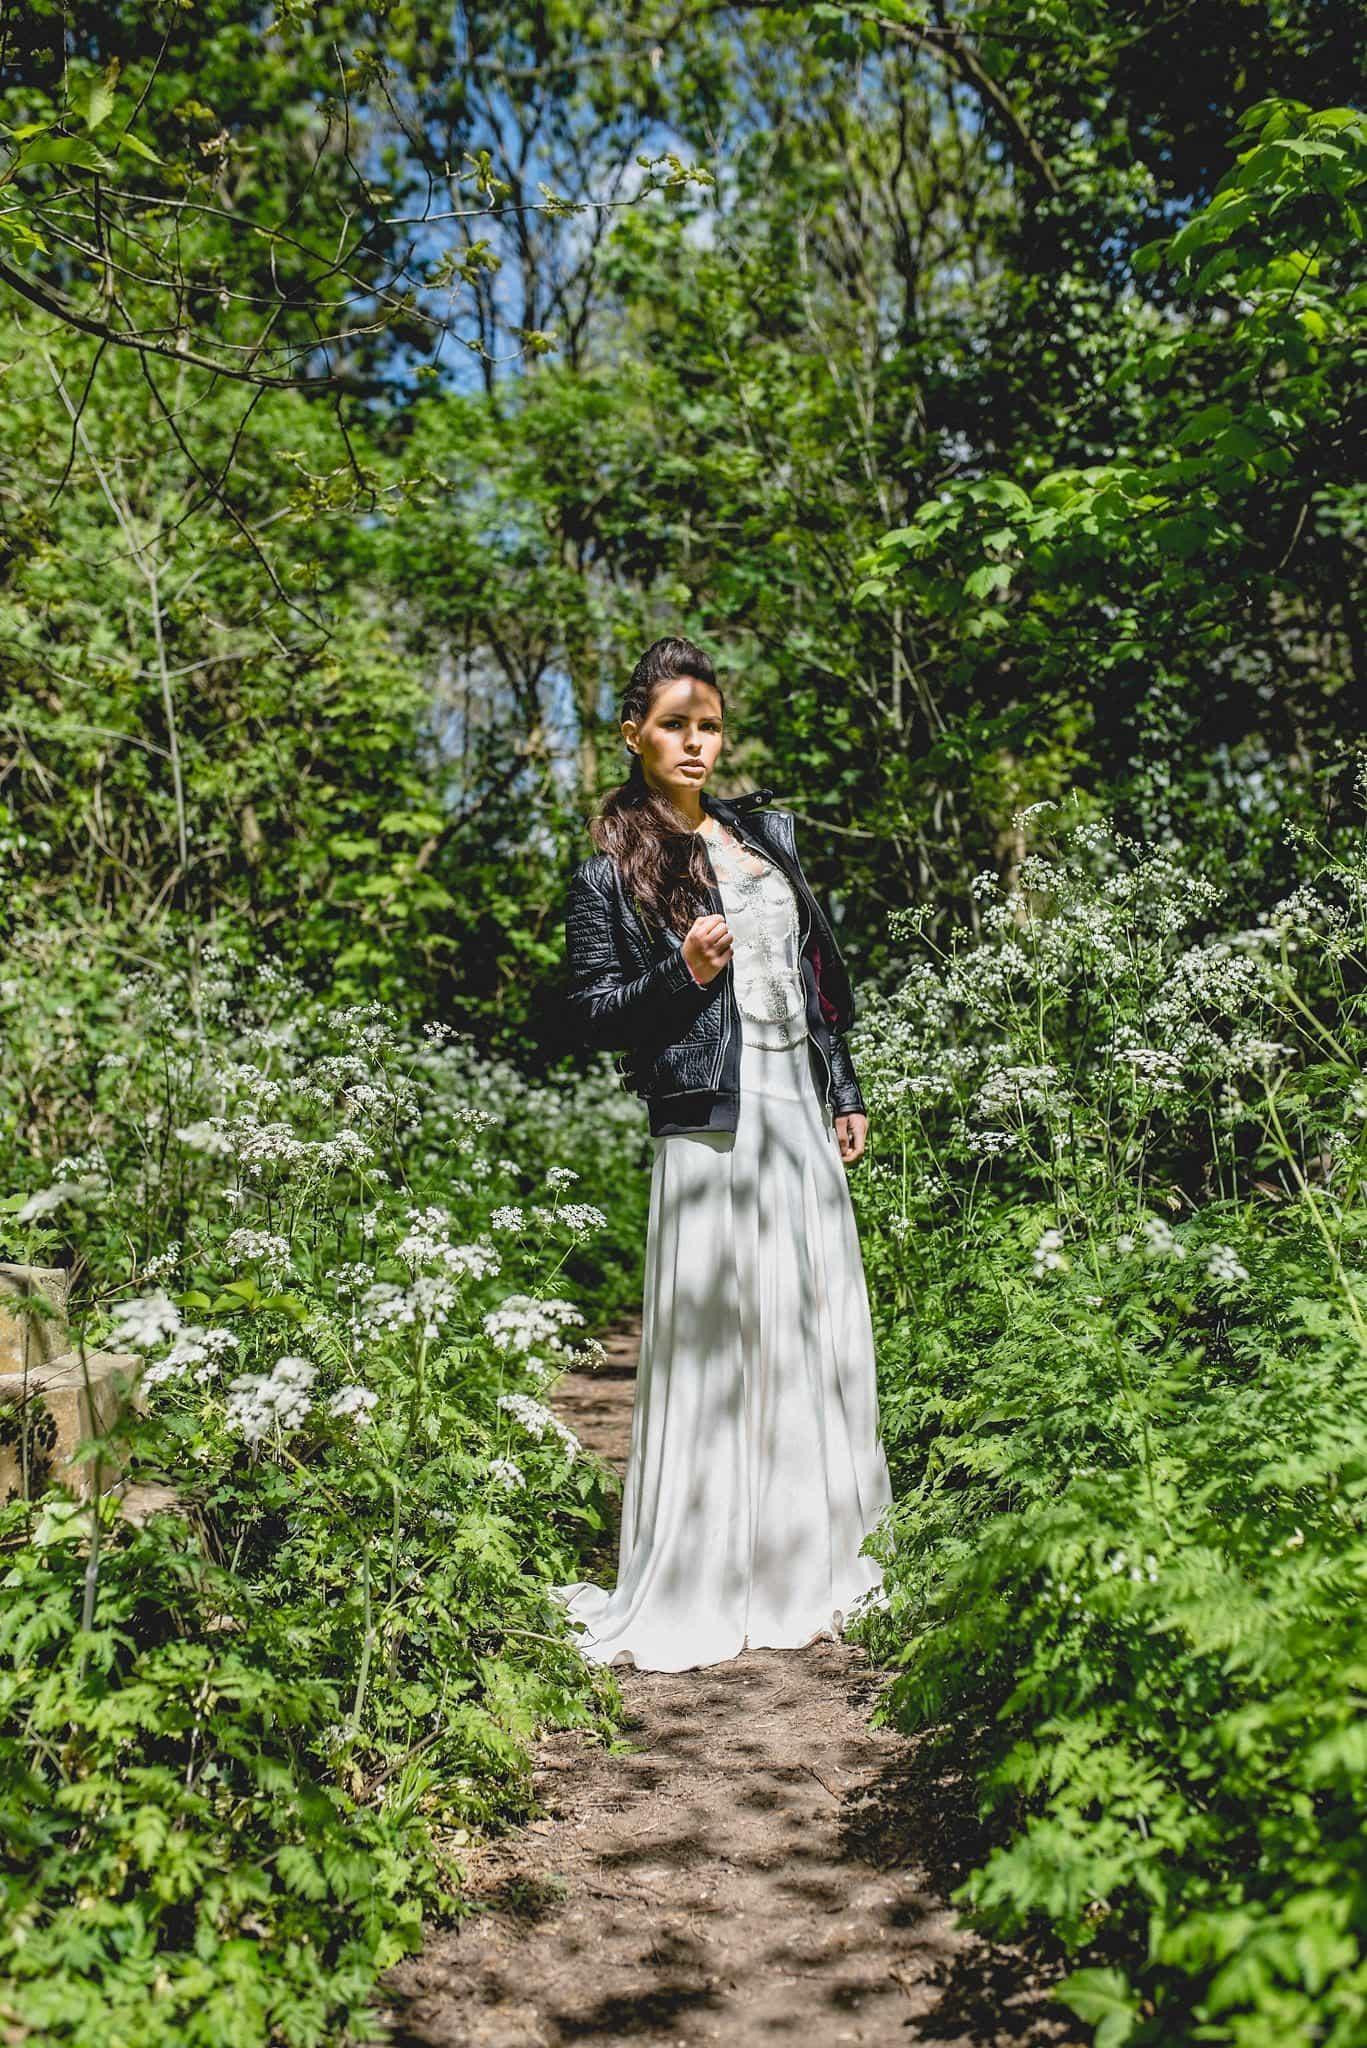 Bride in Catherine Deane separates with leather jacket among wildflowers in Abney Park